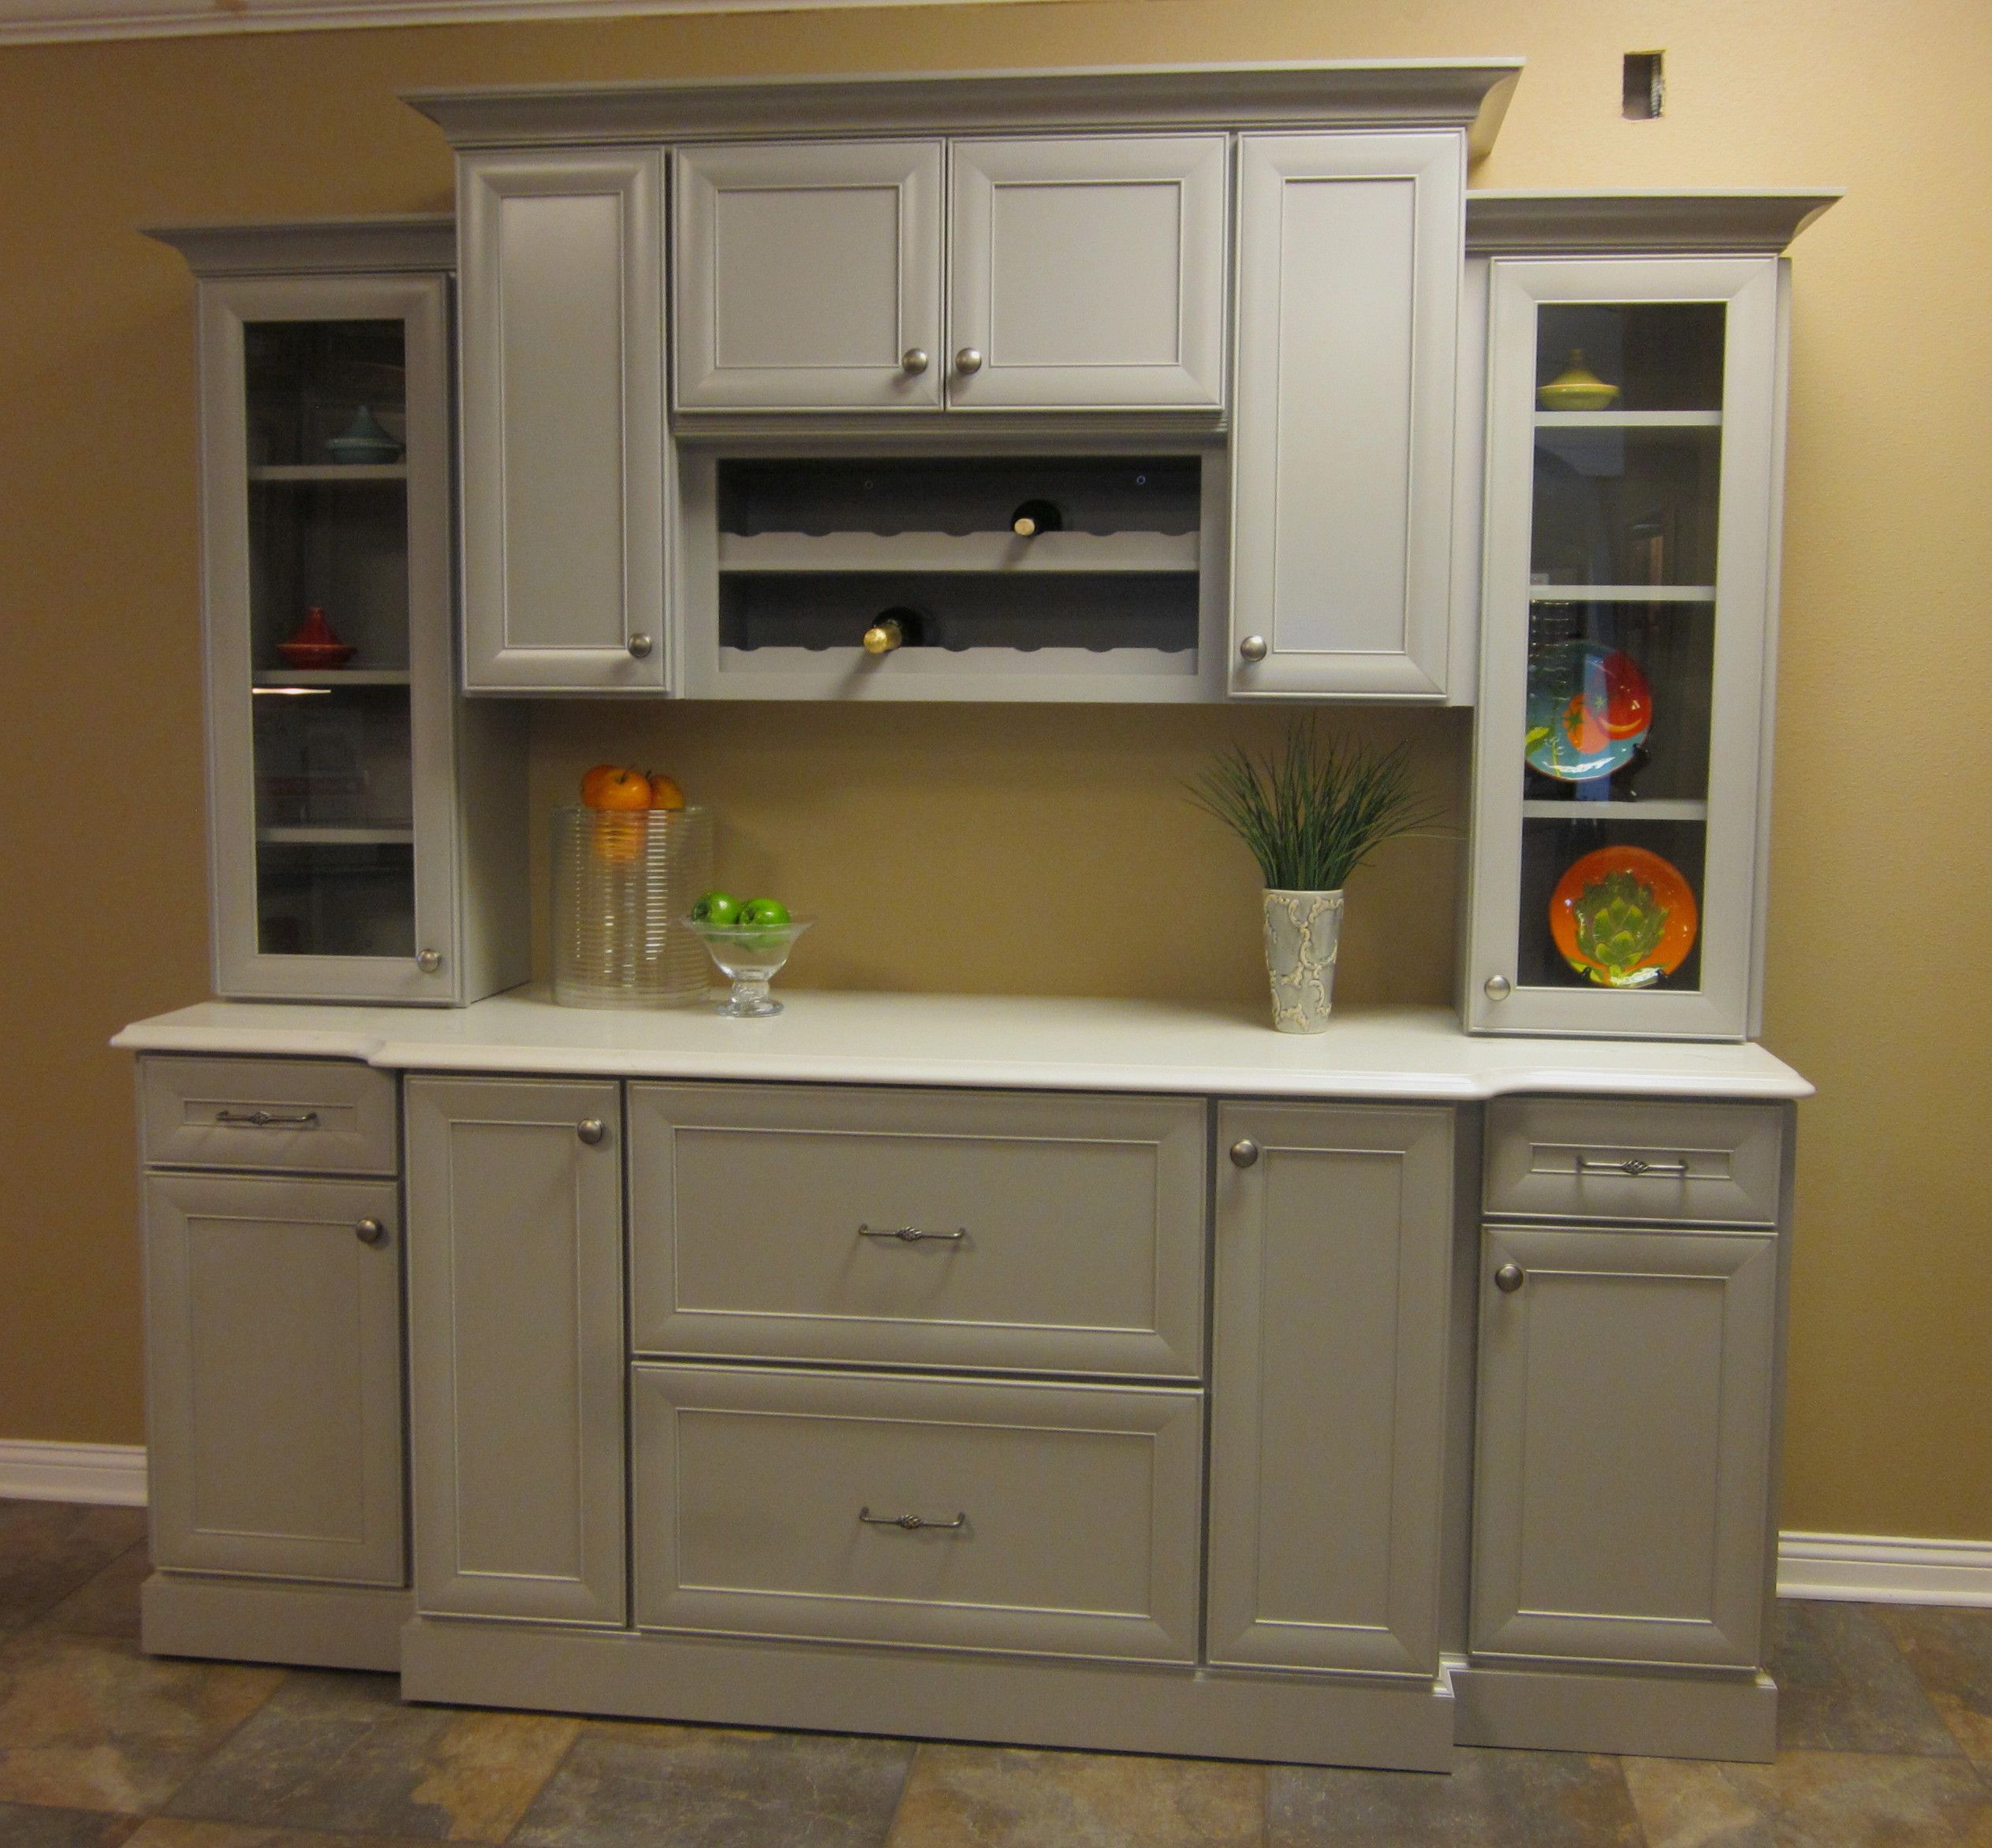 Kitchen Cabinet Renovations: The New, Mitered Doorstyle Is Bayville, The Cabinetry Line